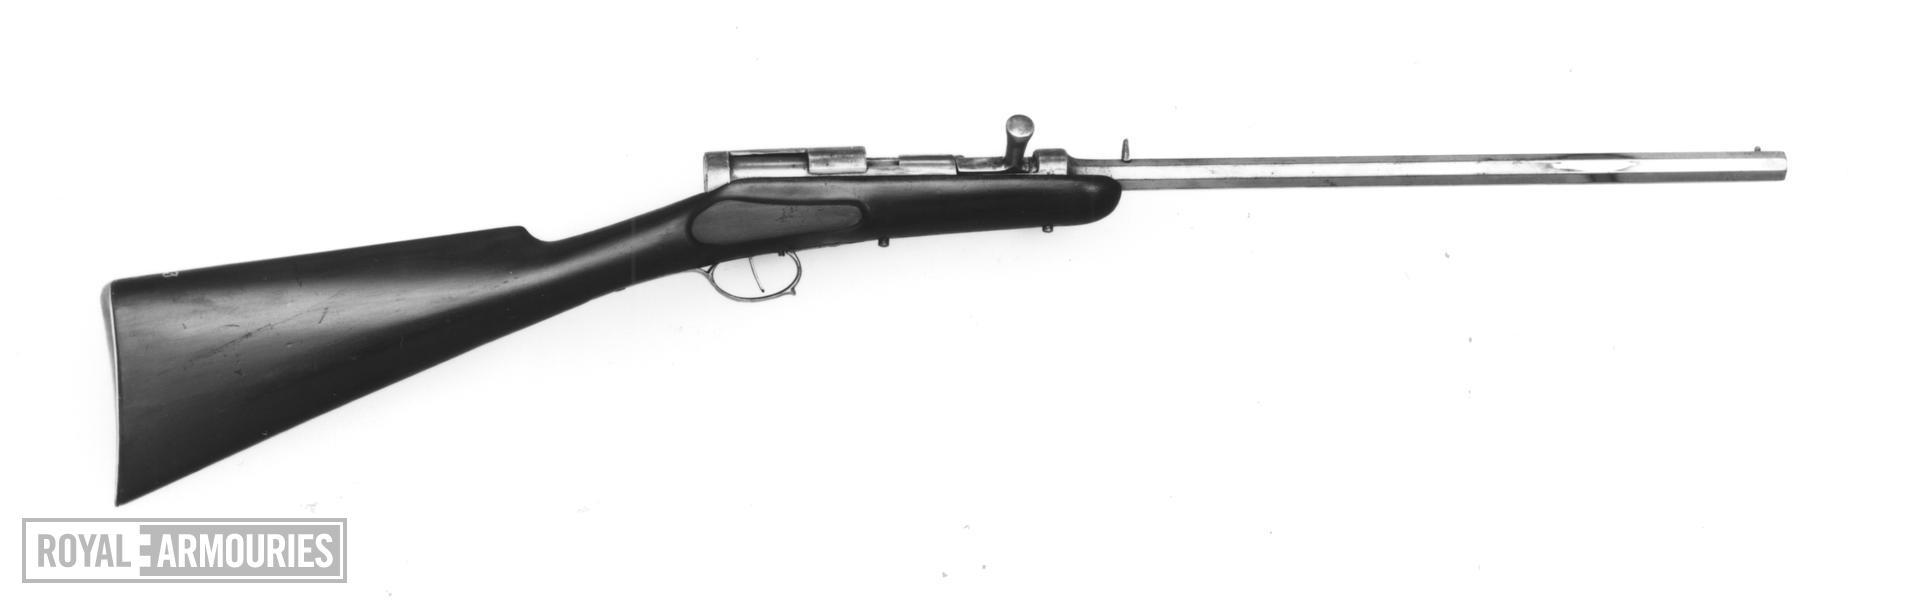 Air rifle